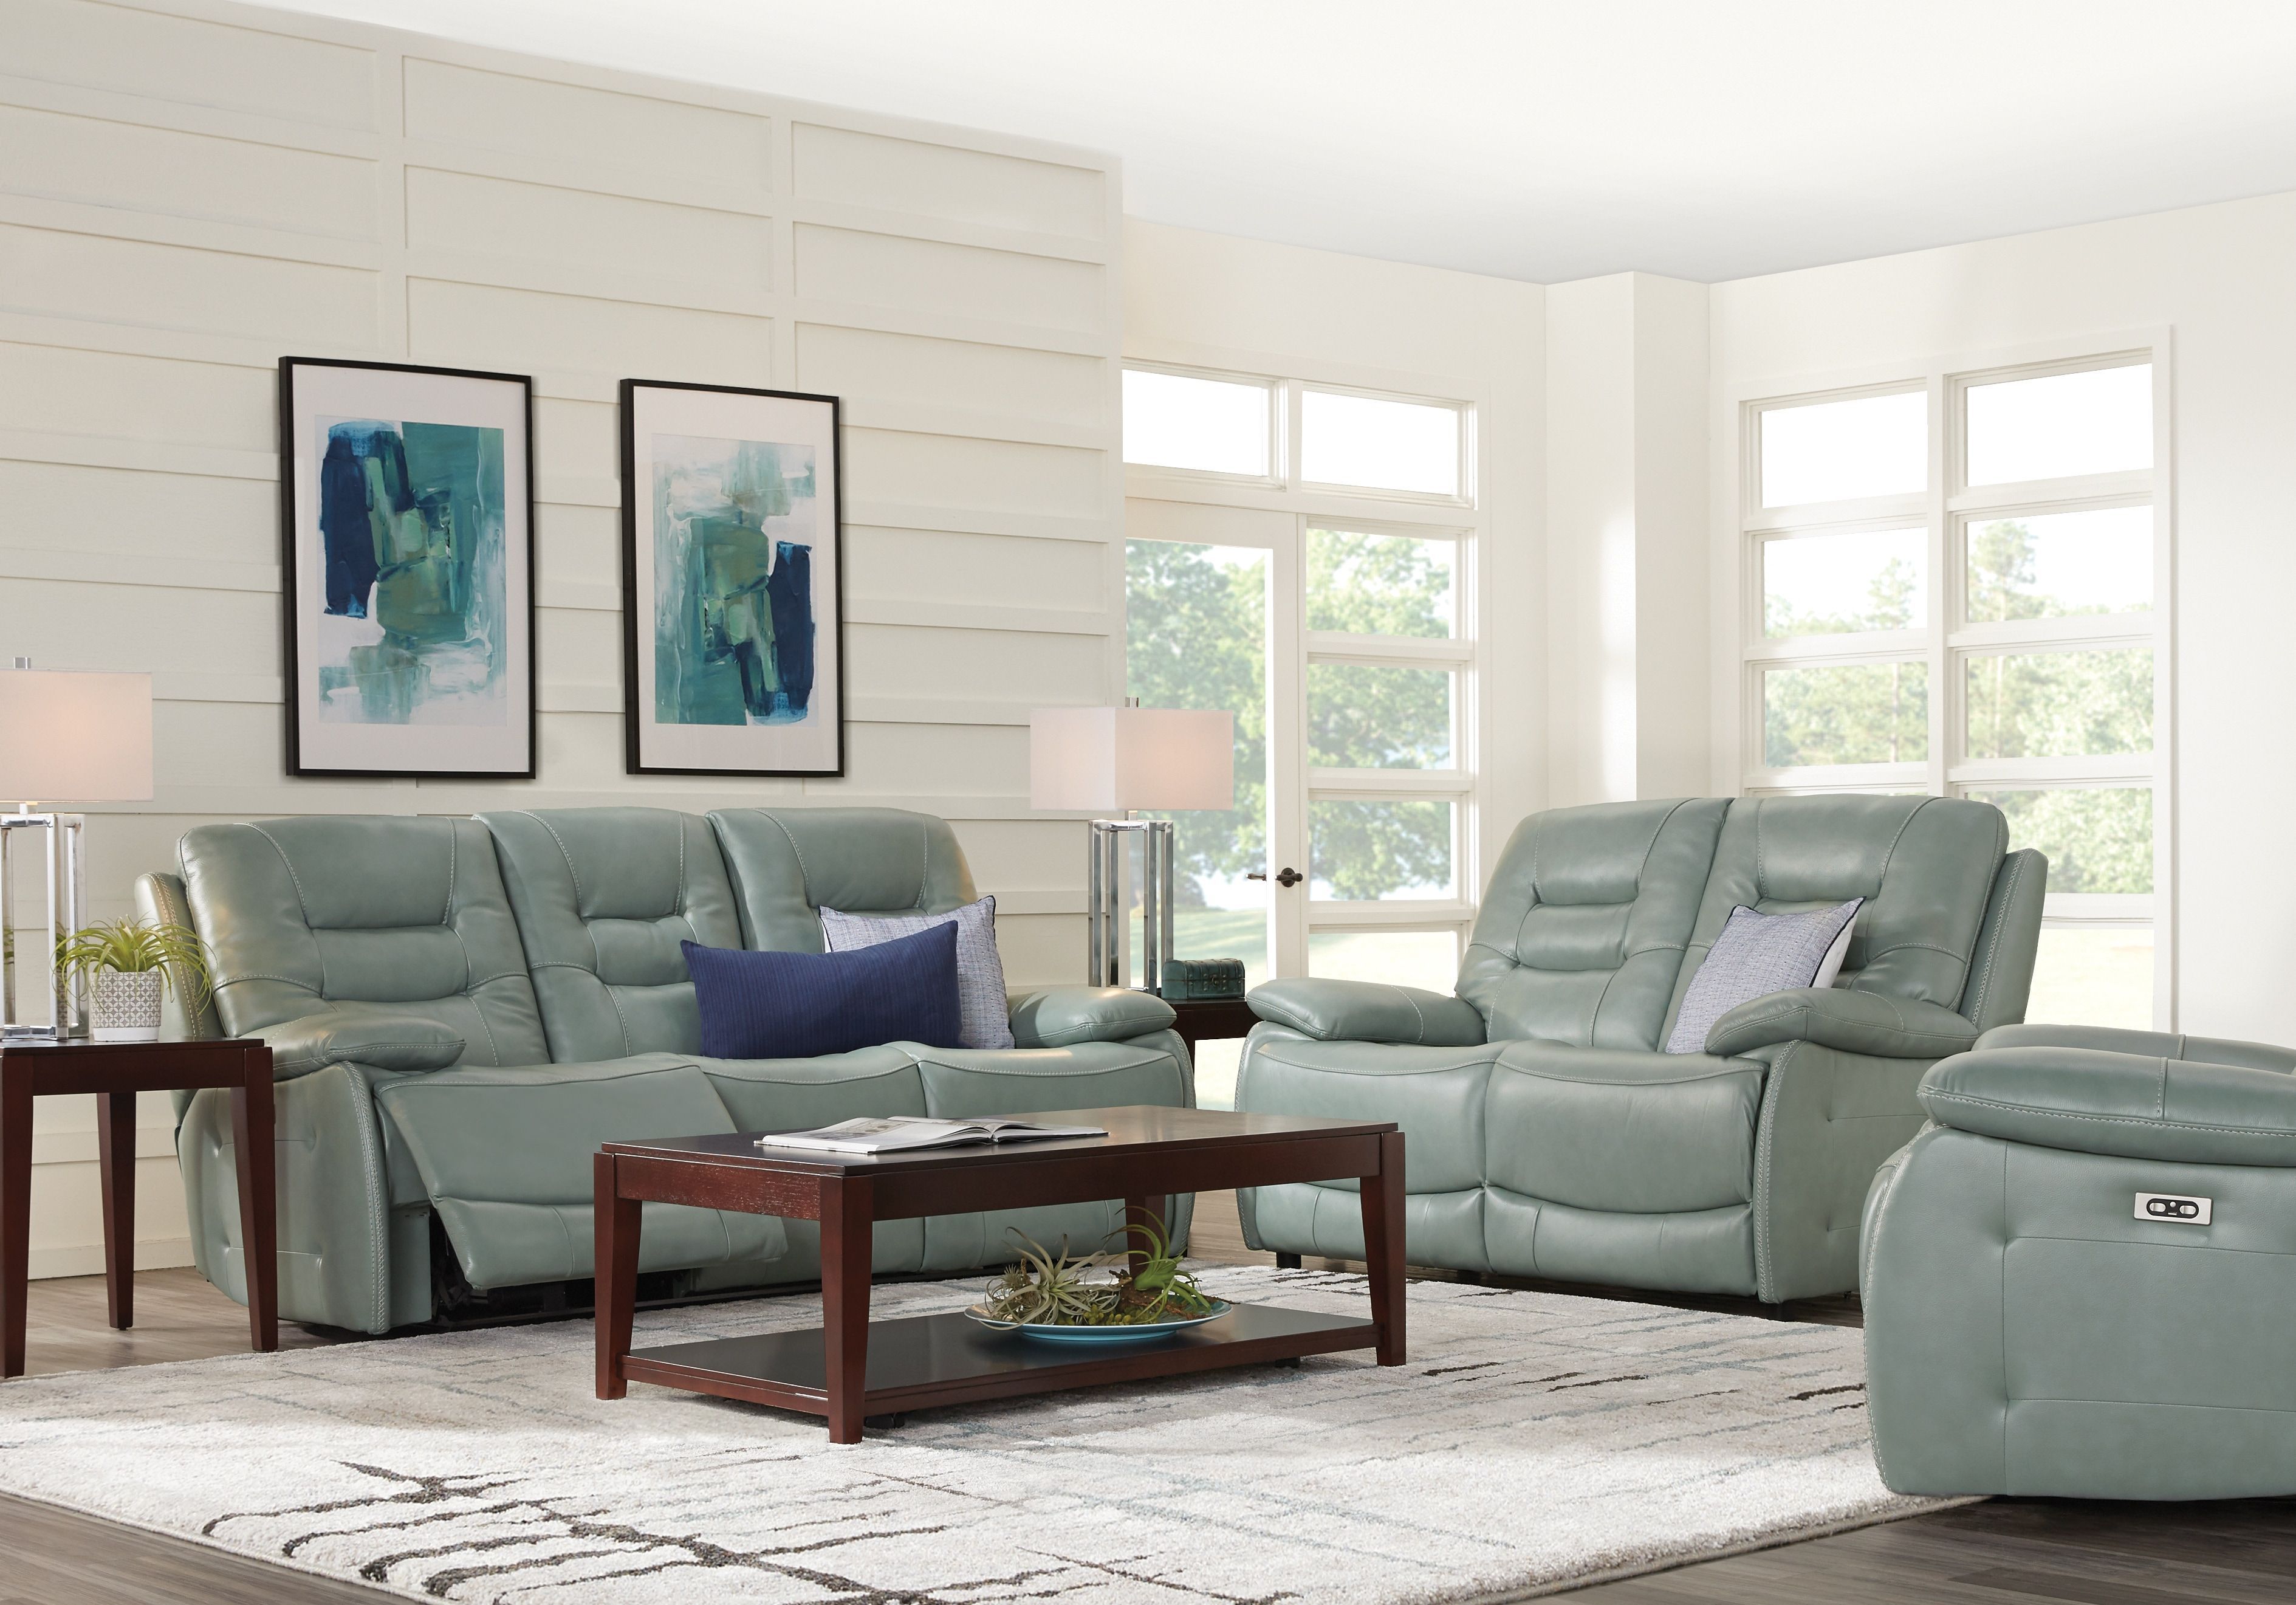 Best Carini Seafoam Leather 3 Pc Living Room With Reclining 400 x 300